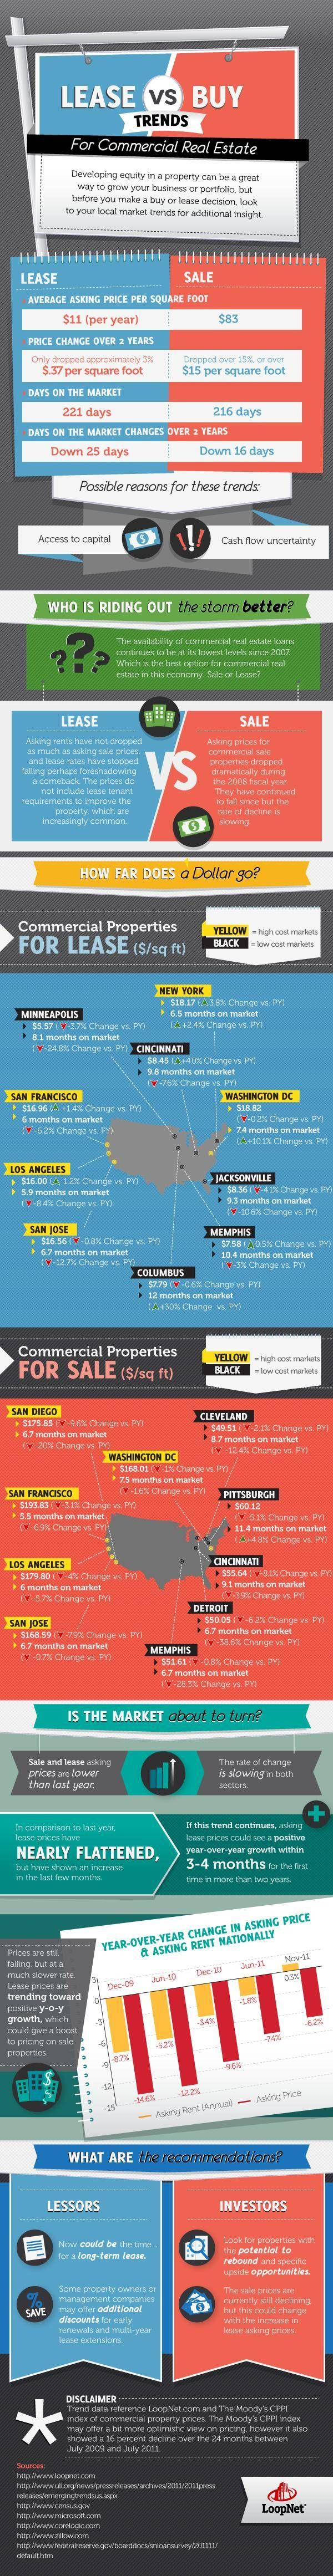 Lease vs. Buy Trends in Commercial Real Estate #infographic #realestate